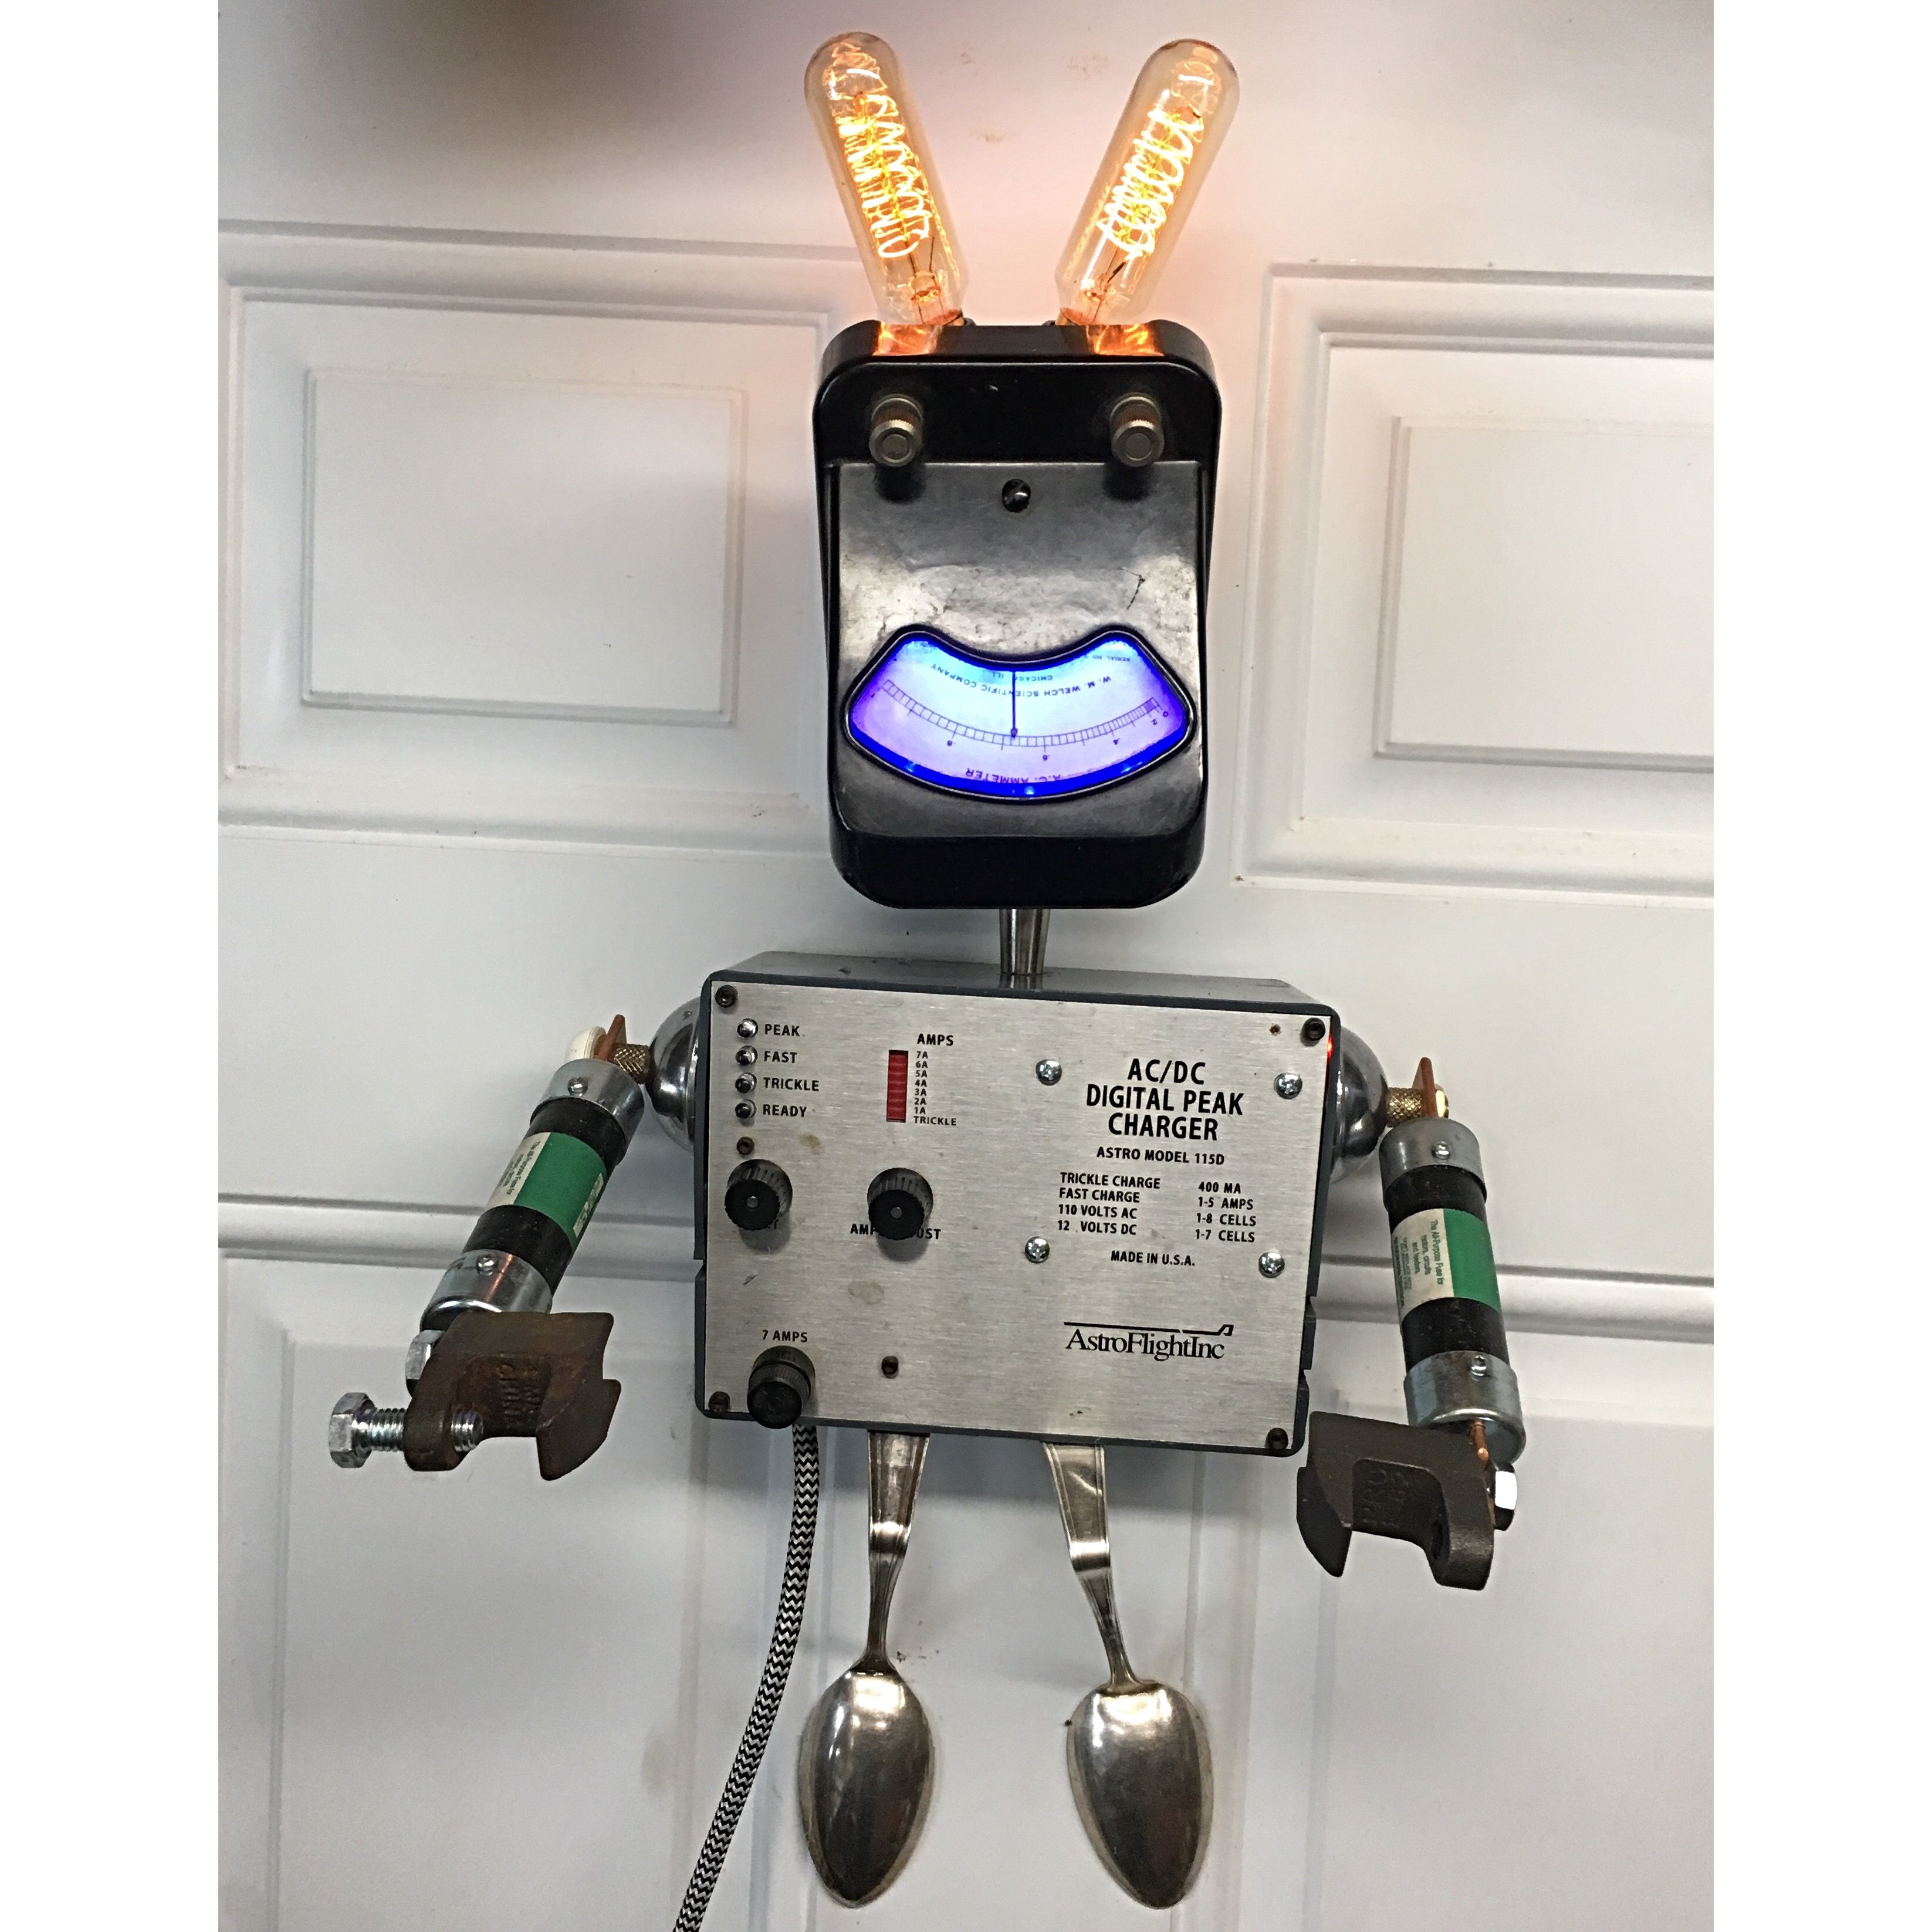 low this printed of letsmakerobots kinematic has choose version is s first my tertial lamp ikea good with using very because based let robot arm on i it tertiarm cost